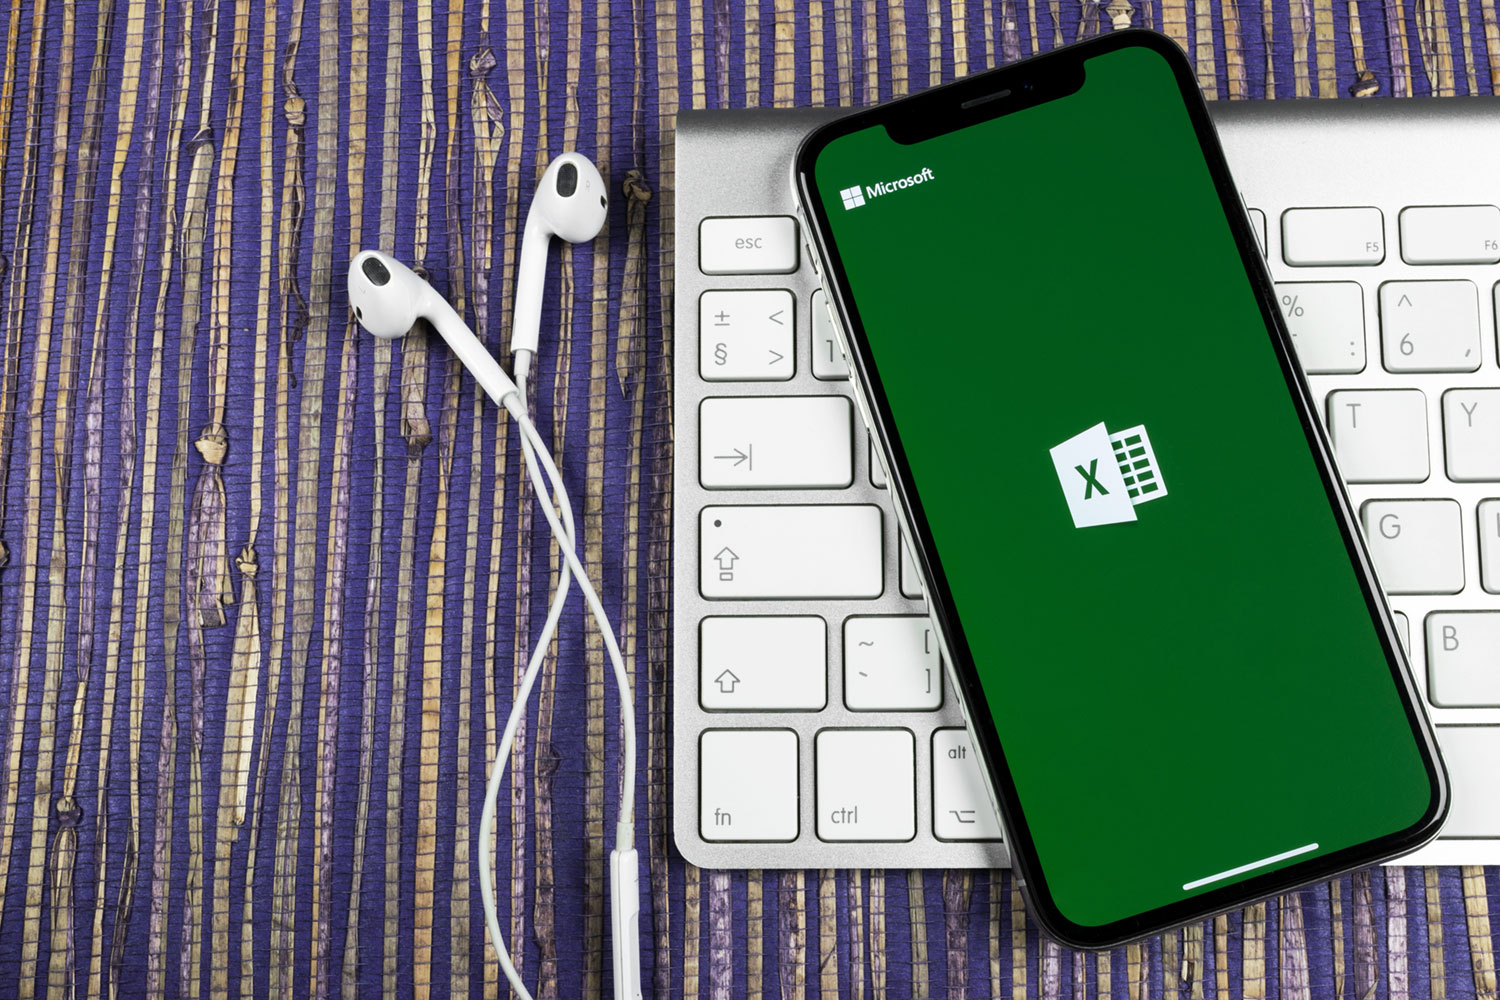 Use Excel App to Create a Home Inventory List